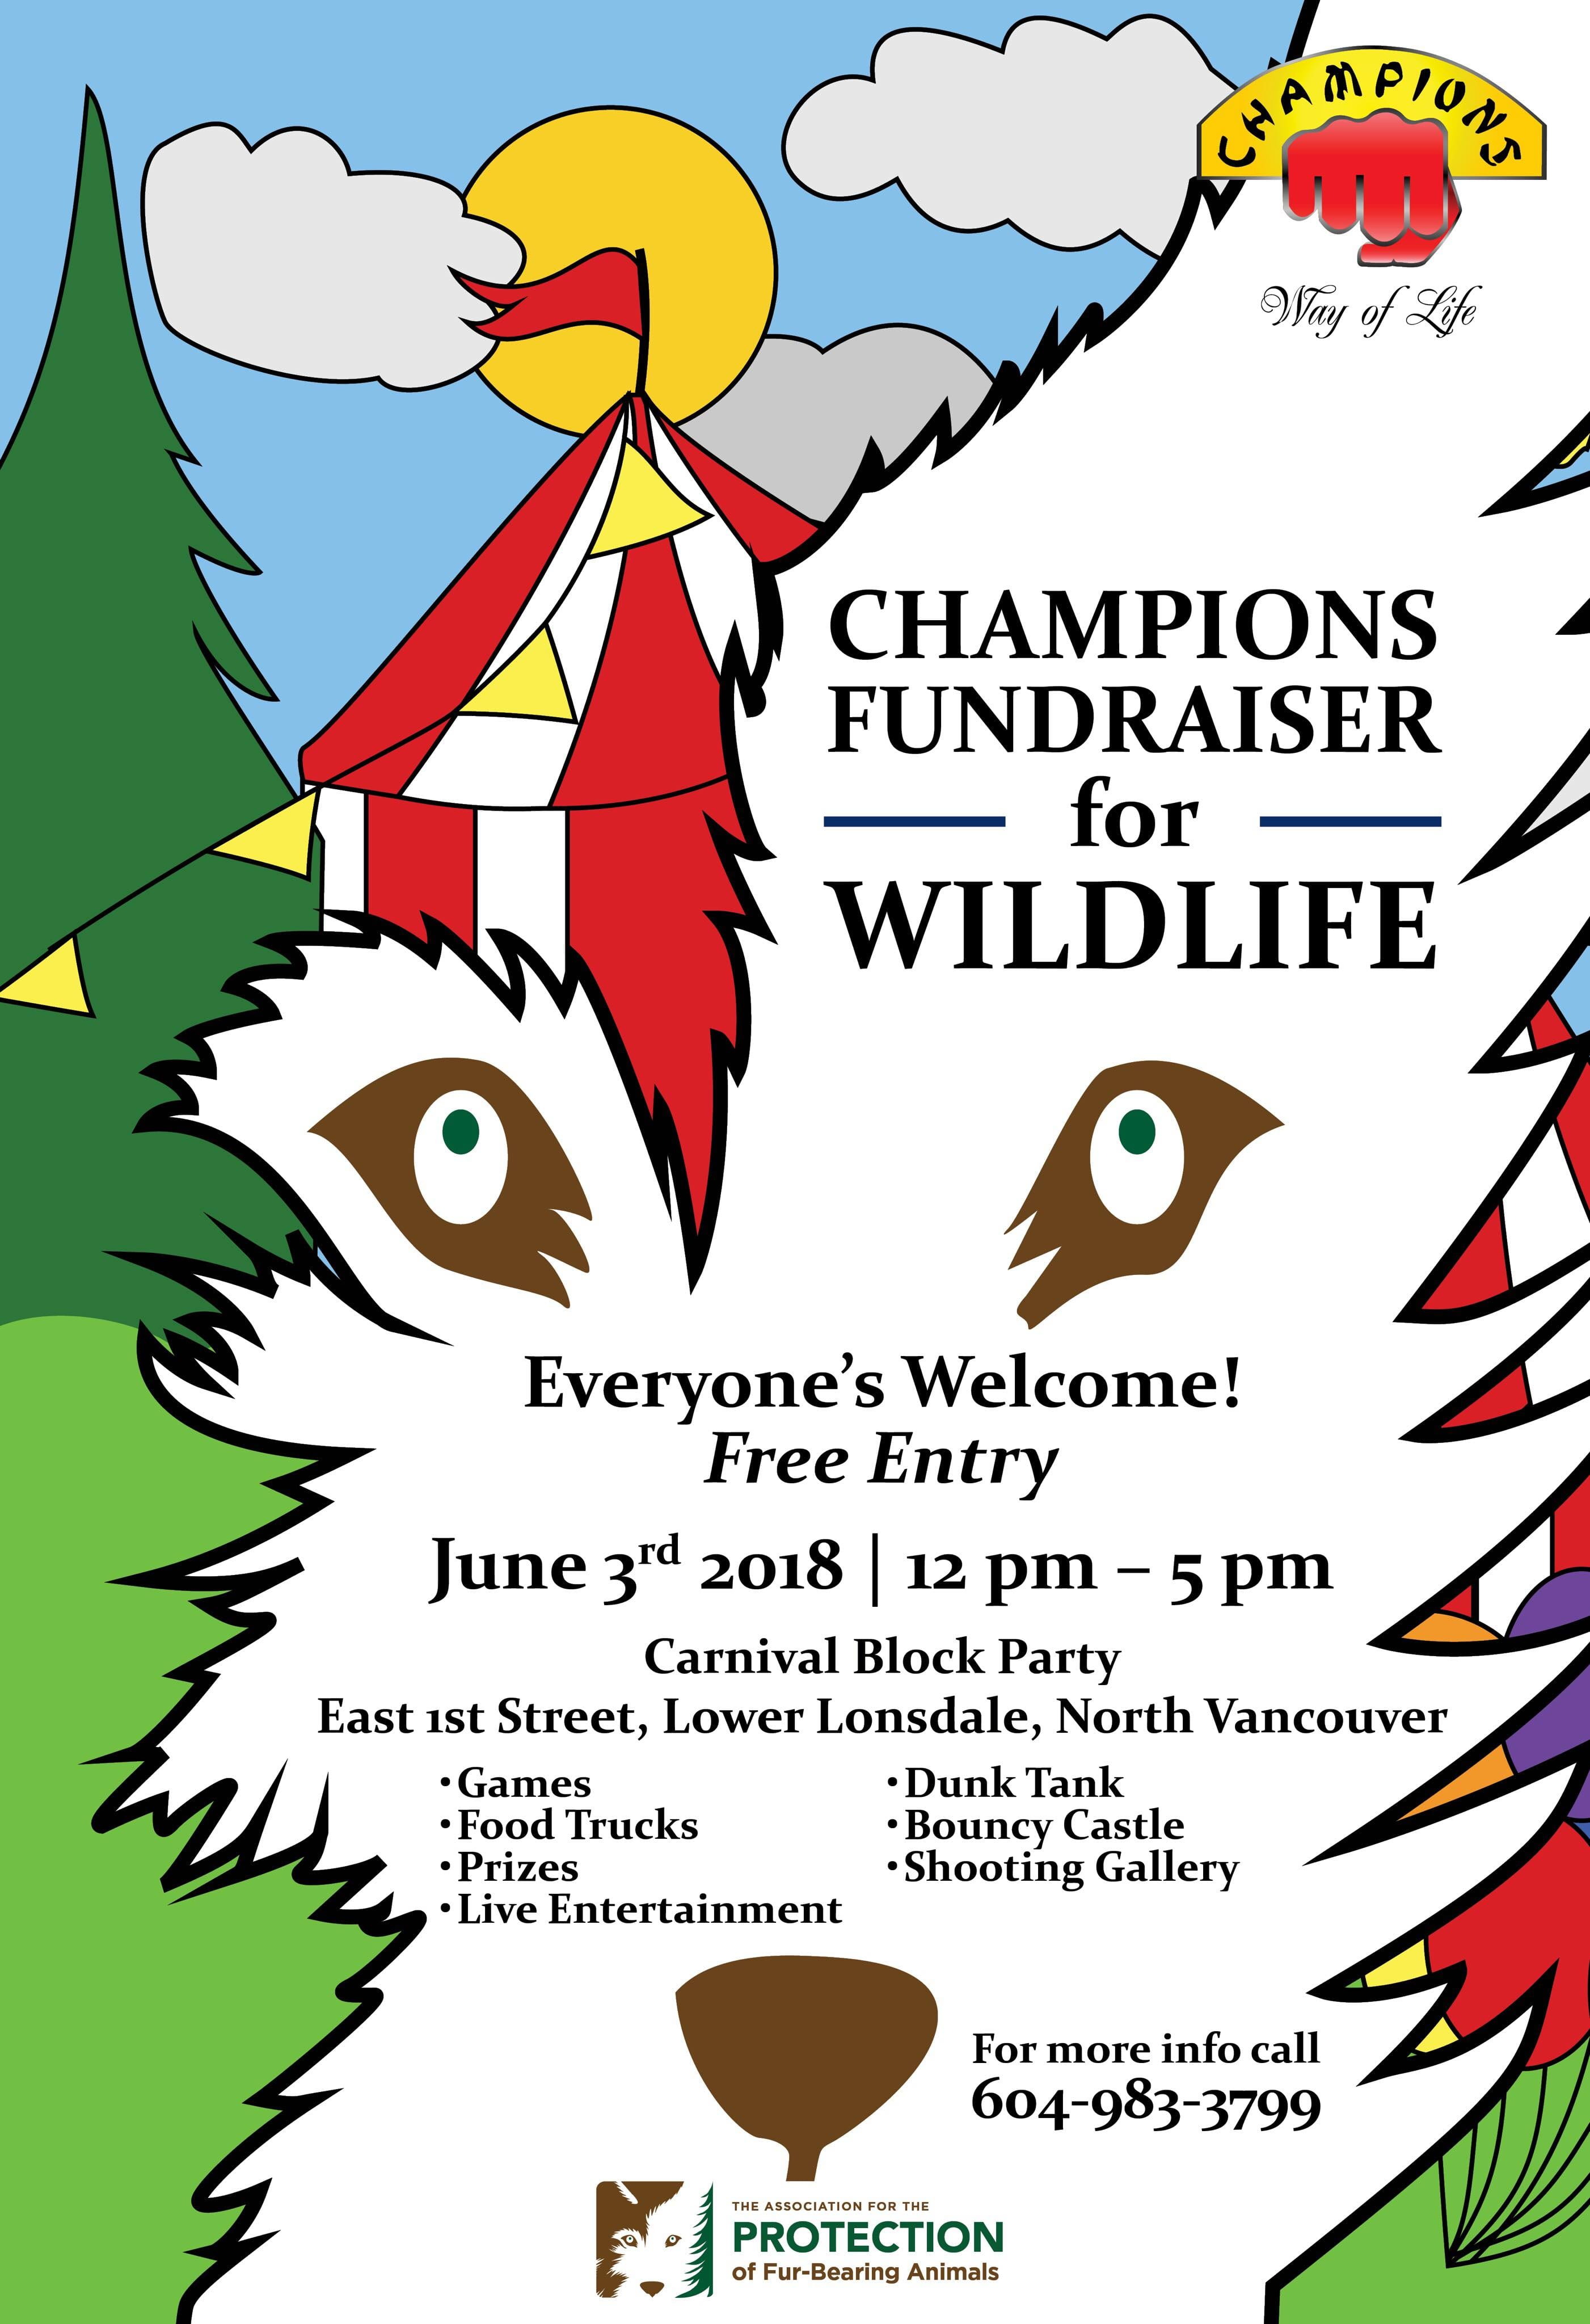 Champions Fundraiser for Wildlife in North Vancouver